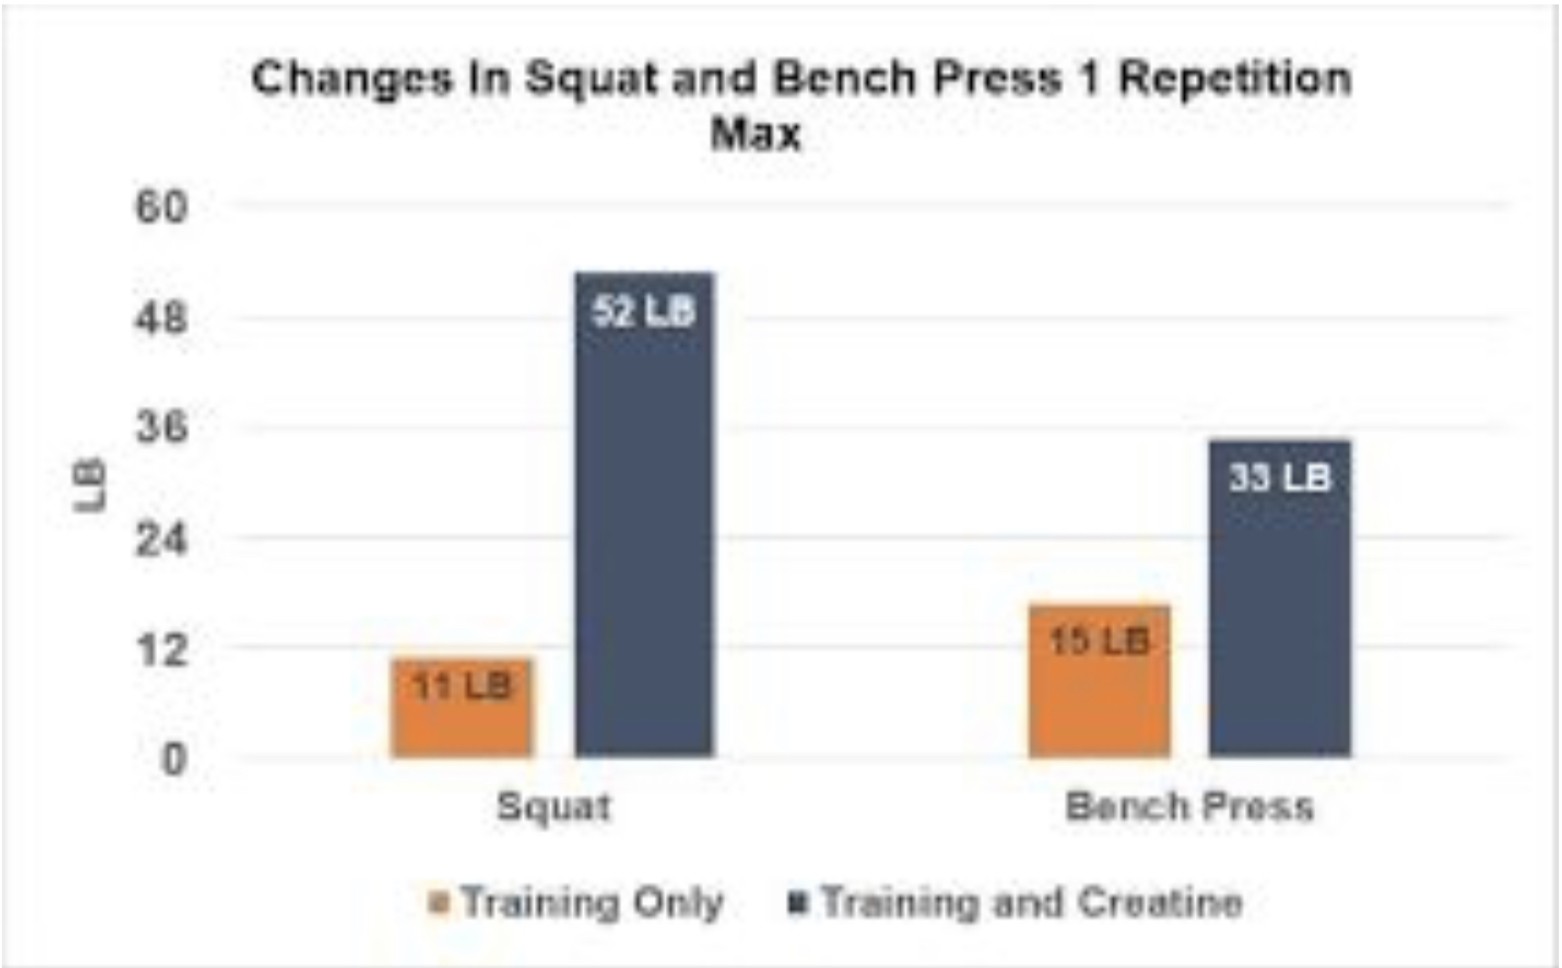 Creatine Effect on Squat and Bench Press